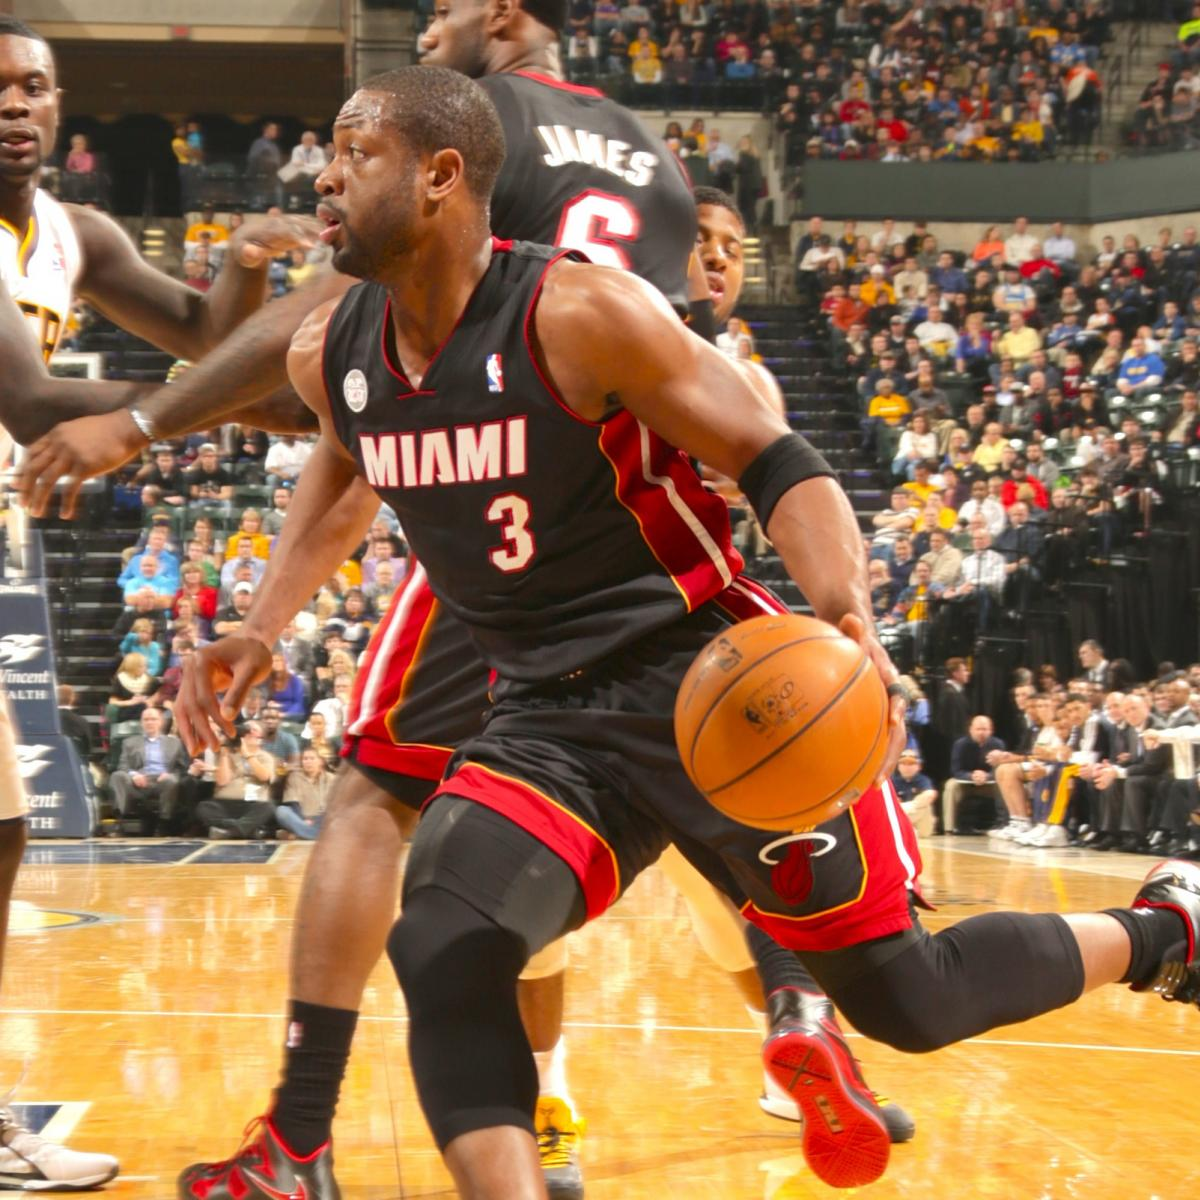 Miami Heat Vs. Indiana Pacers: Live Score, Results And